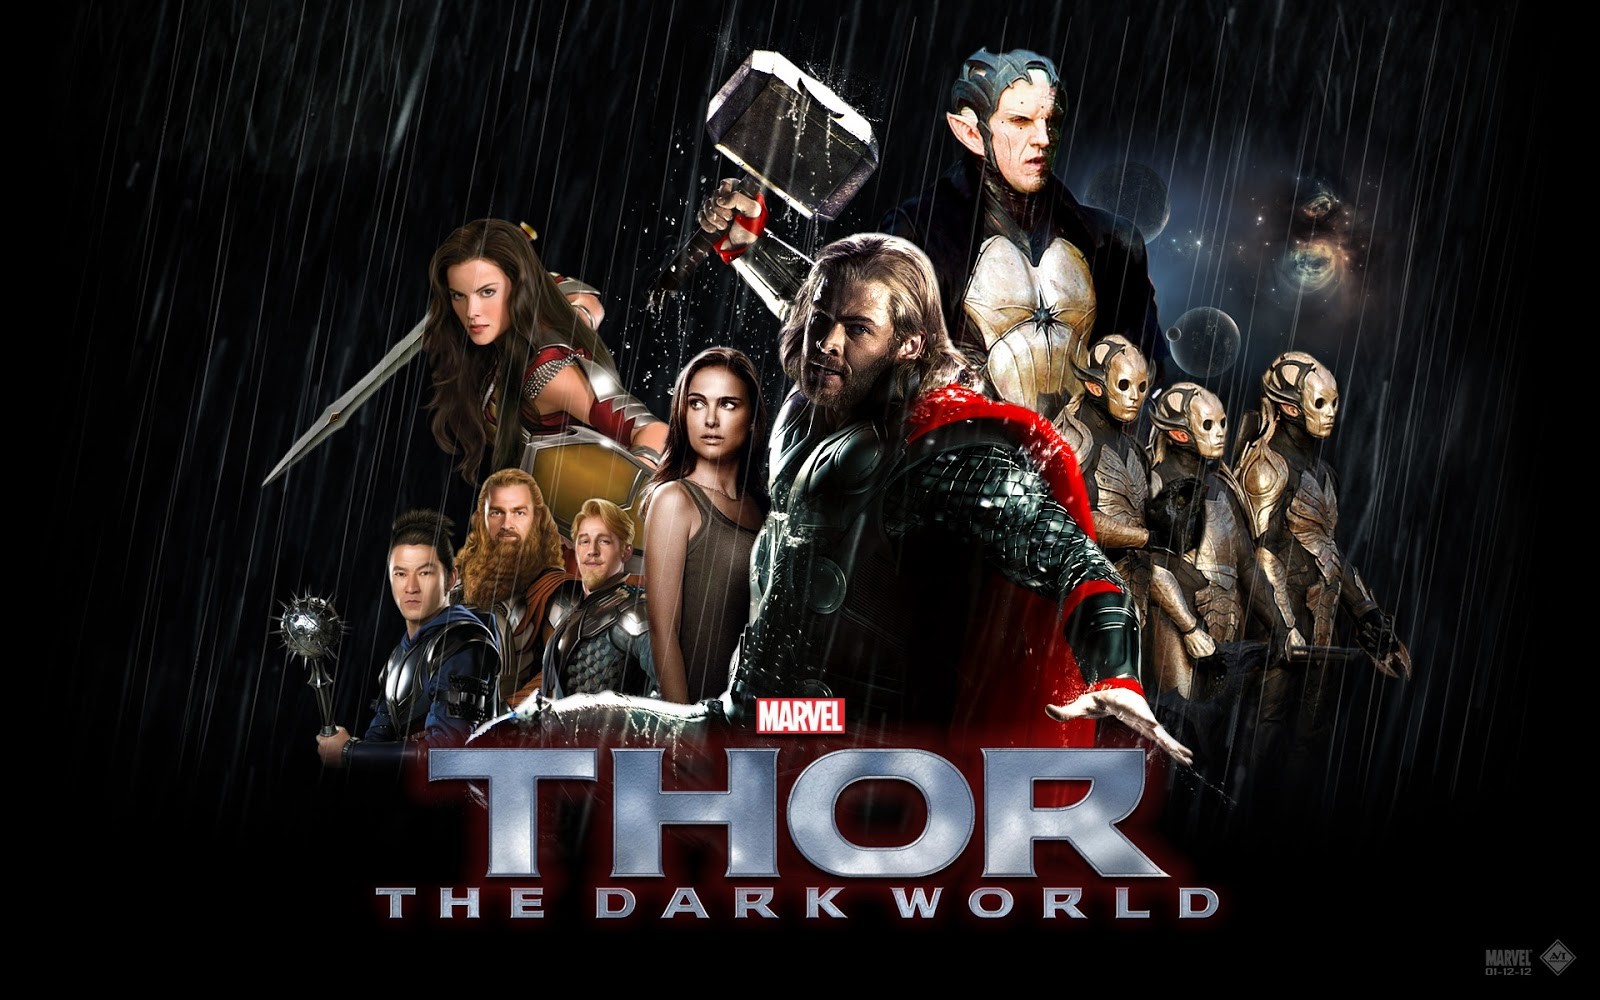 Thor 2 the dark world wallpapers